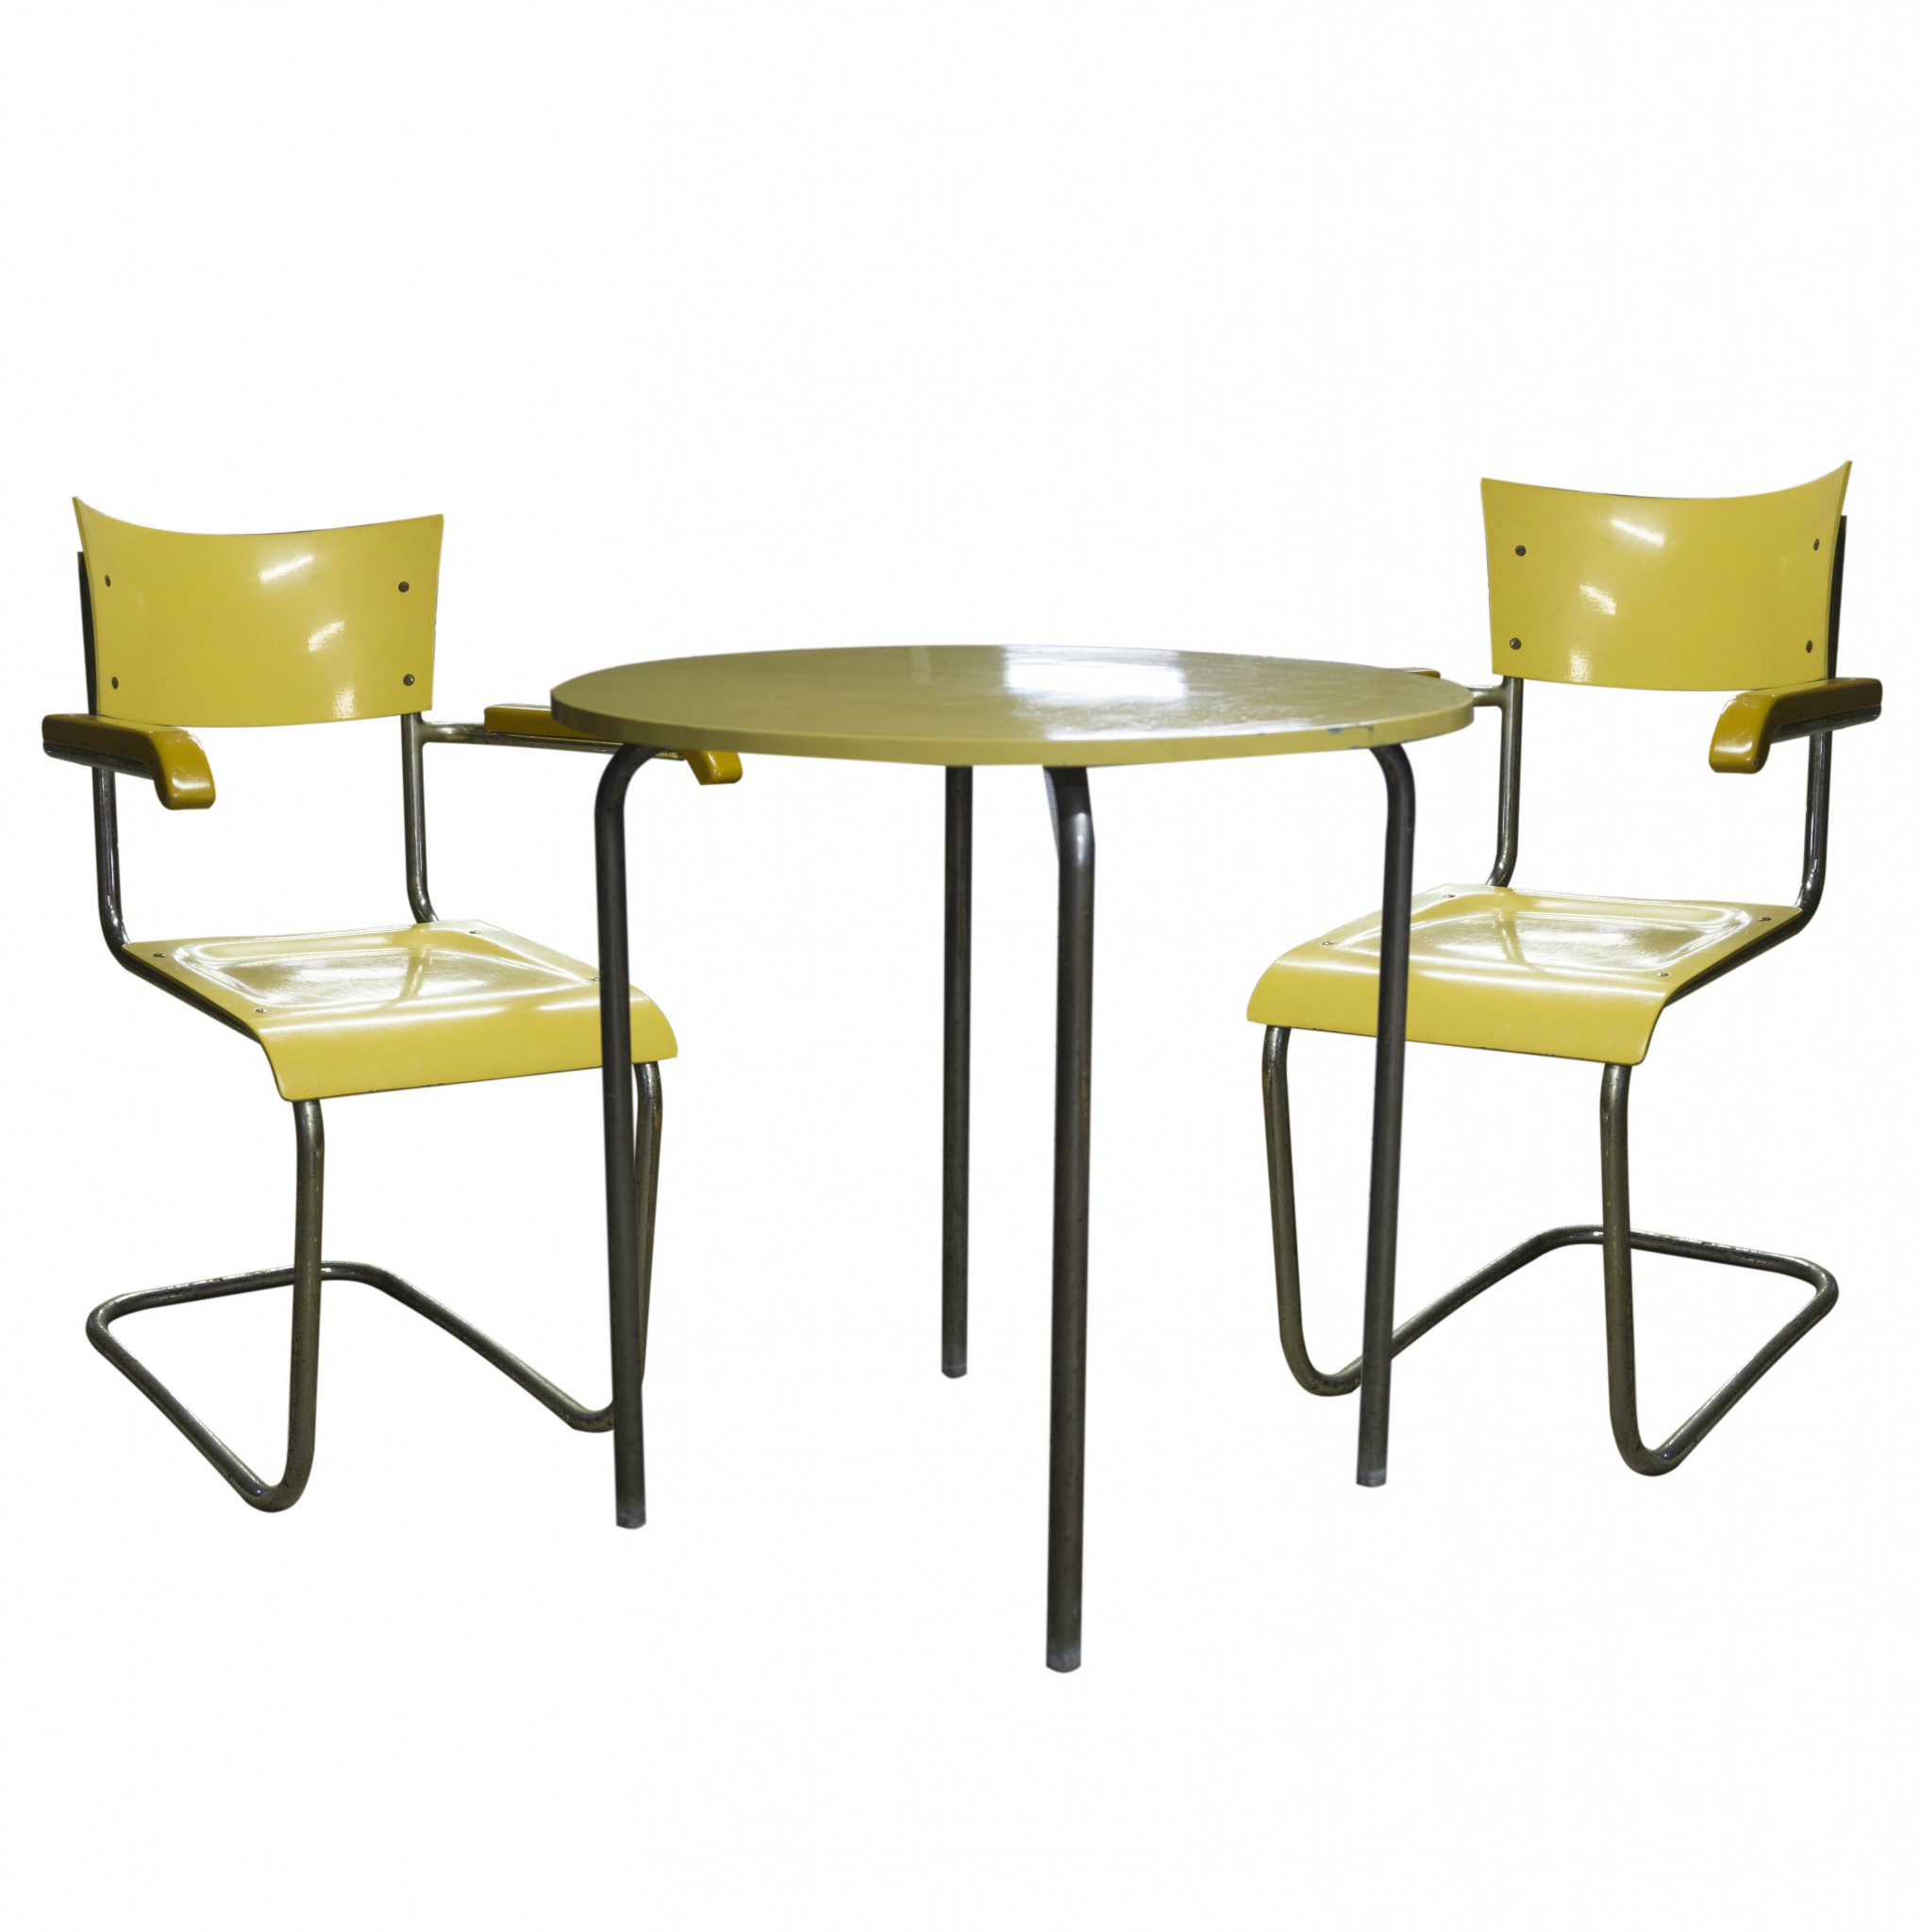 Chairs by Mart Stam B43F and table MR515 by Ludwig Mies Van